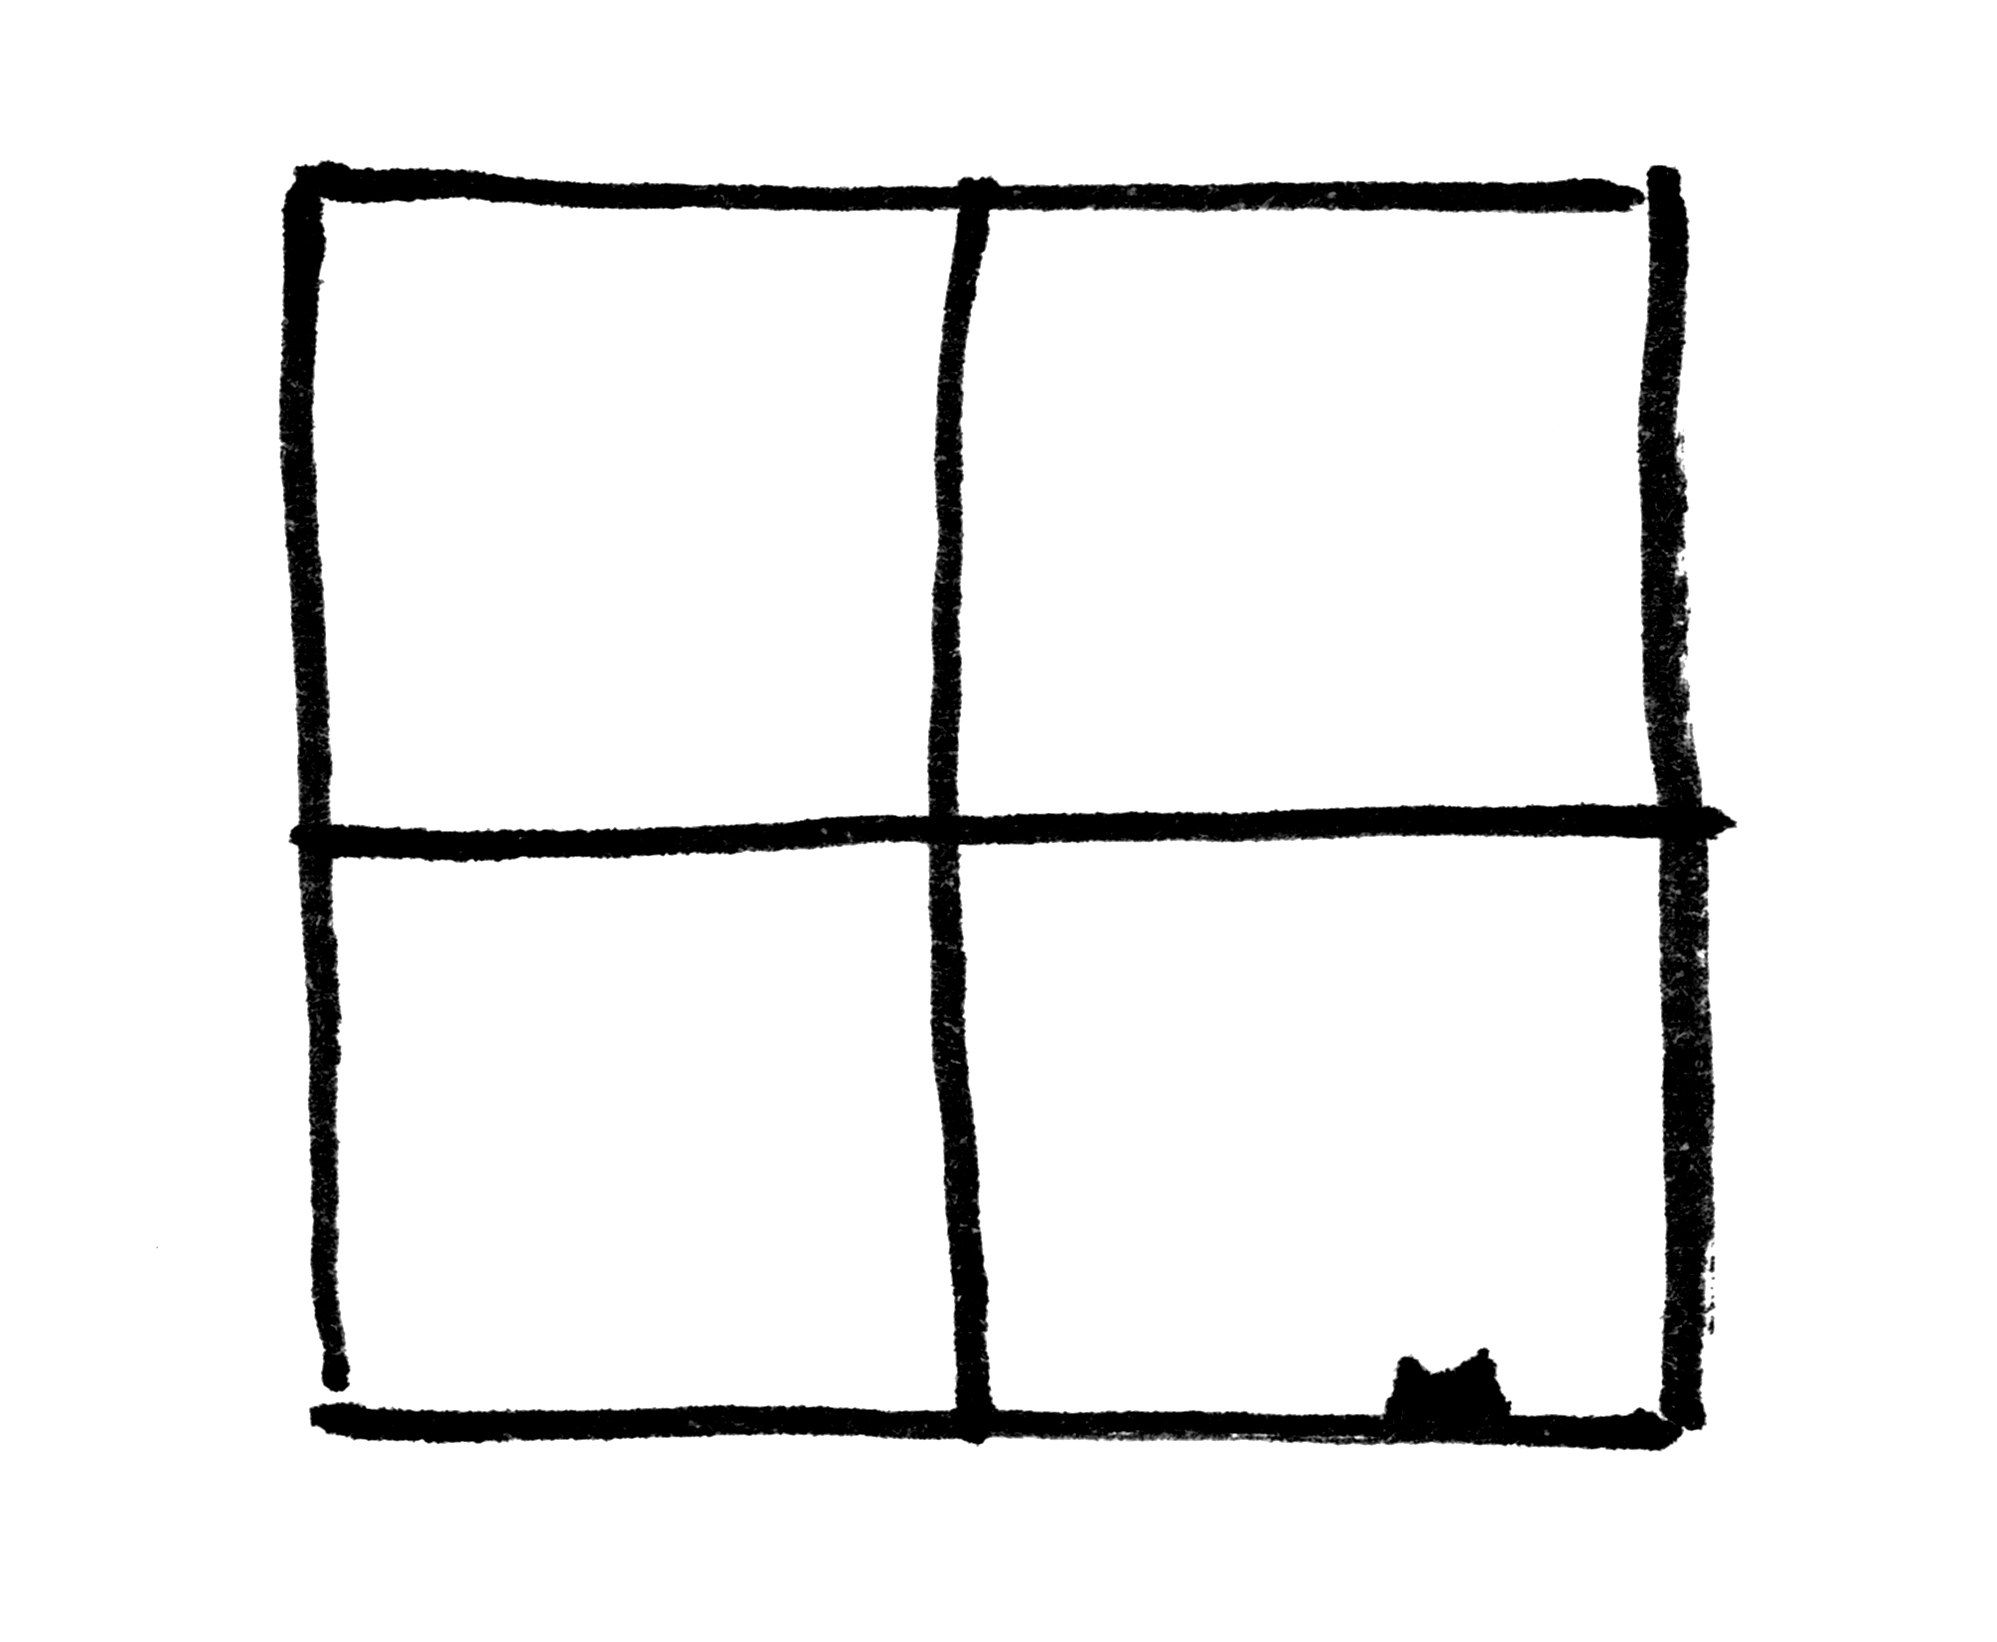 Illustration: a cat's silhouette in a window